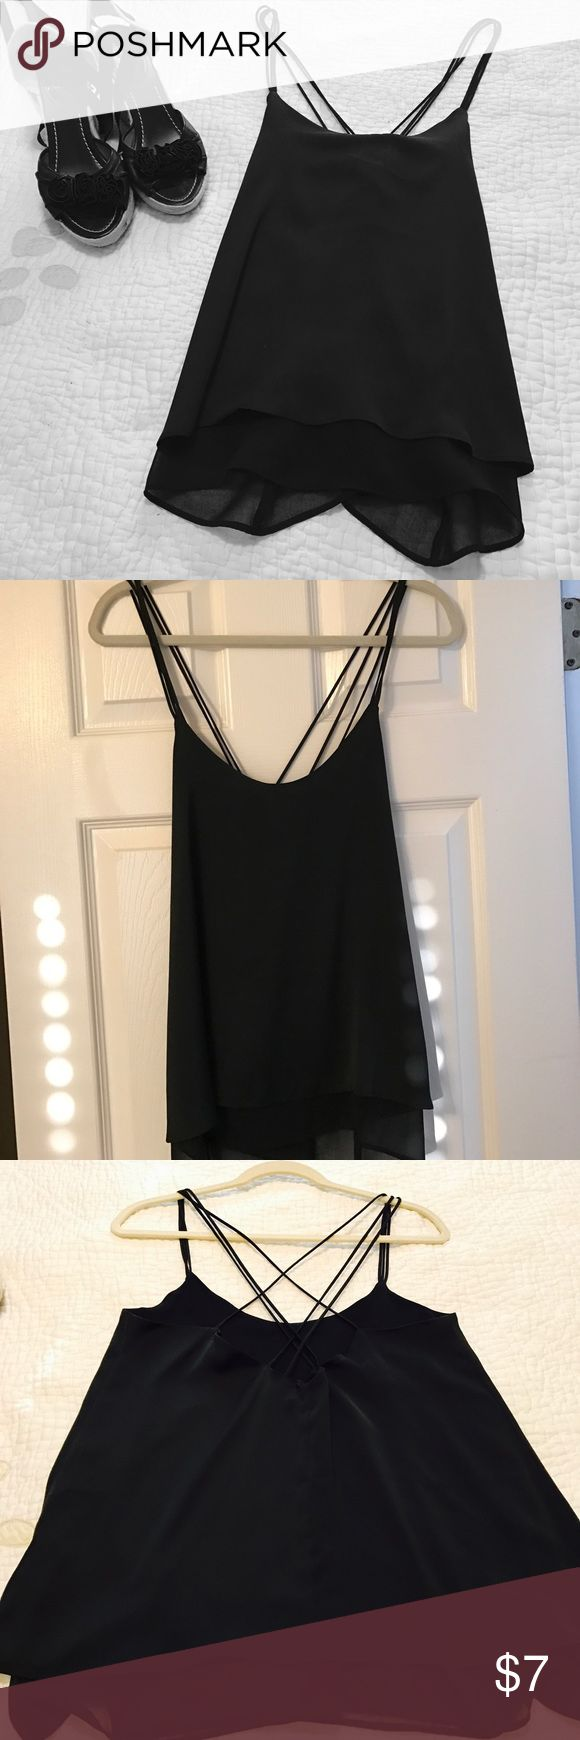 Chiffon Cami top. Spaghetti strap top with criss cross racerback. Aline. Never Worn H&M Tops Camisoles